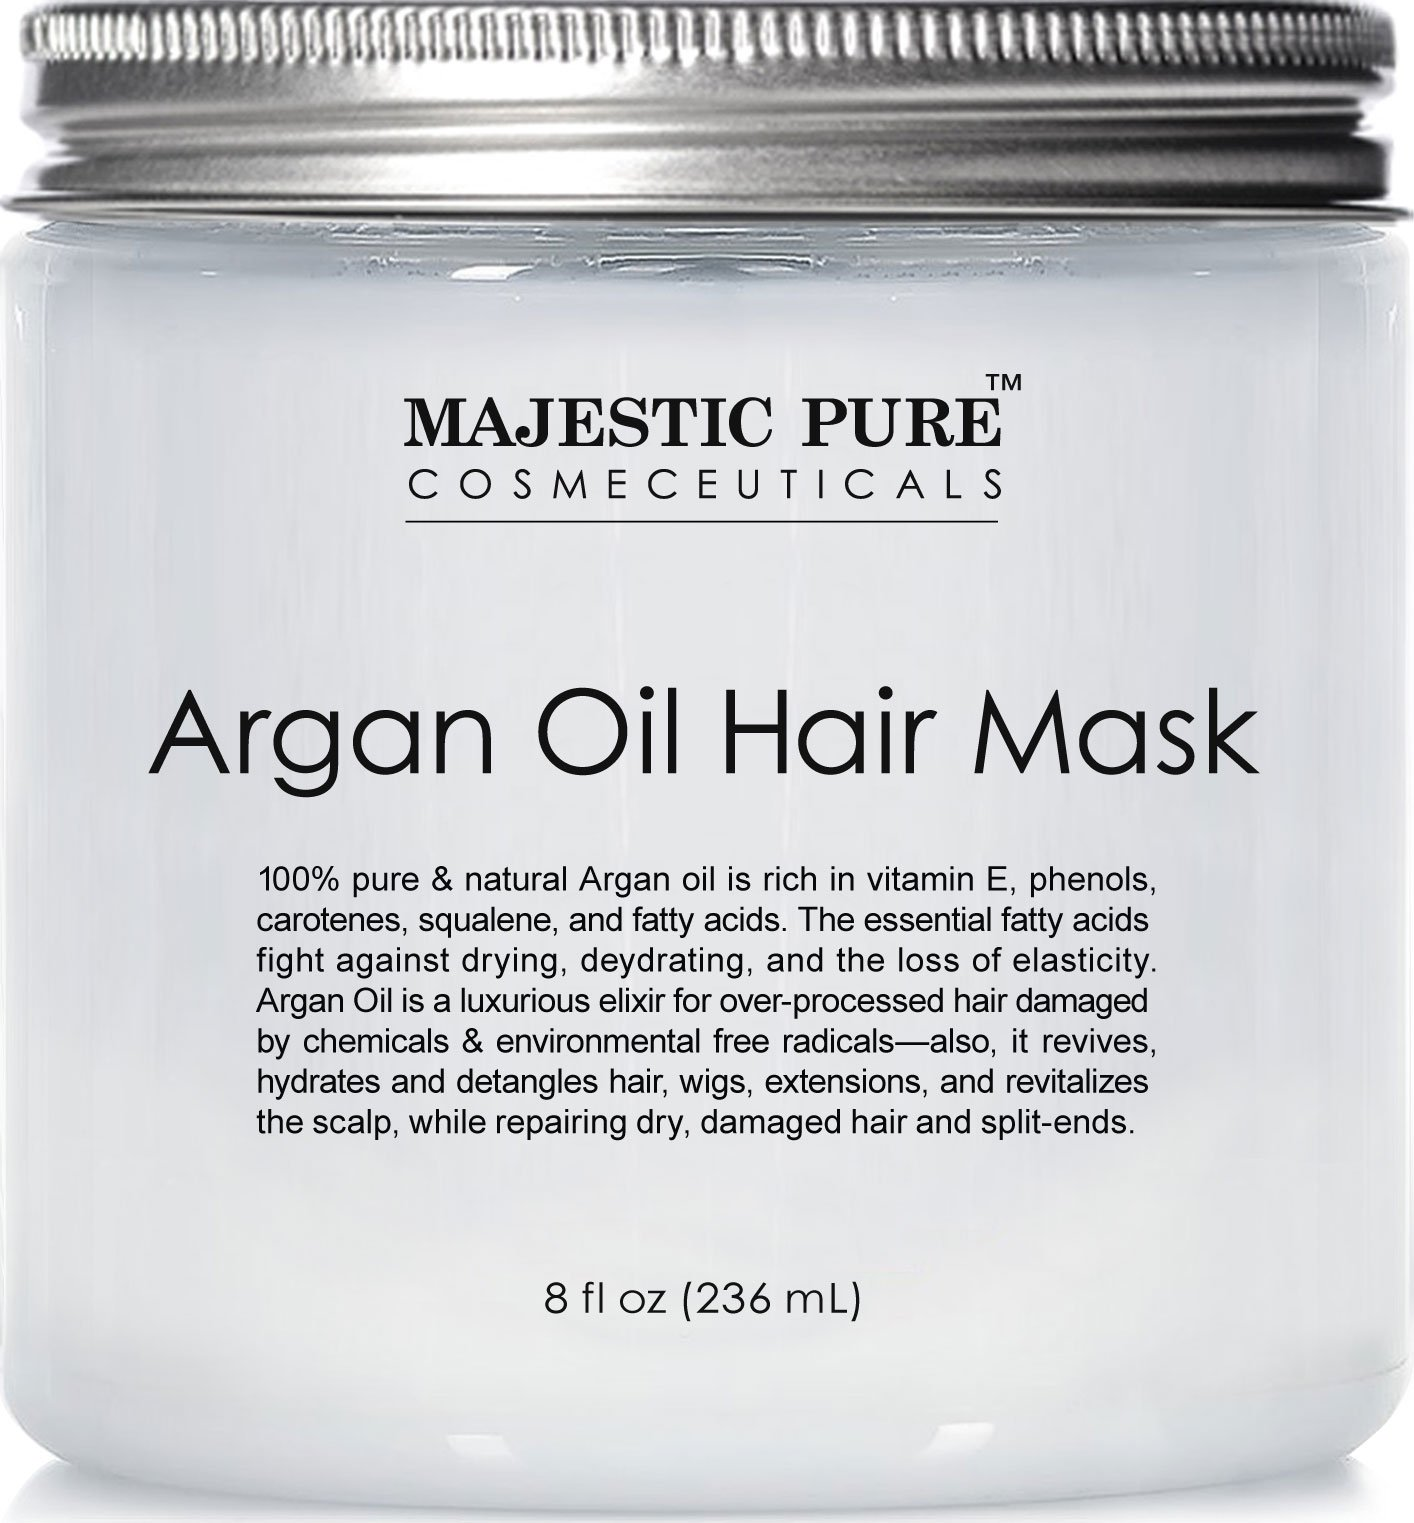 Majestic Pure Argan Hair Mask, Natural Hair Care Product, Hydrating & Restorative Hair Repair Mask - 8 fl Oz